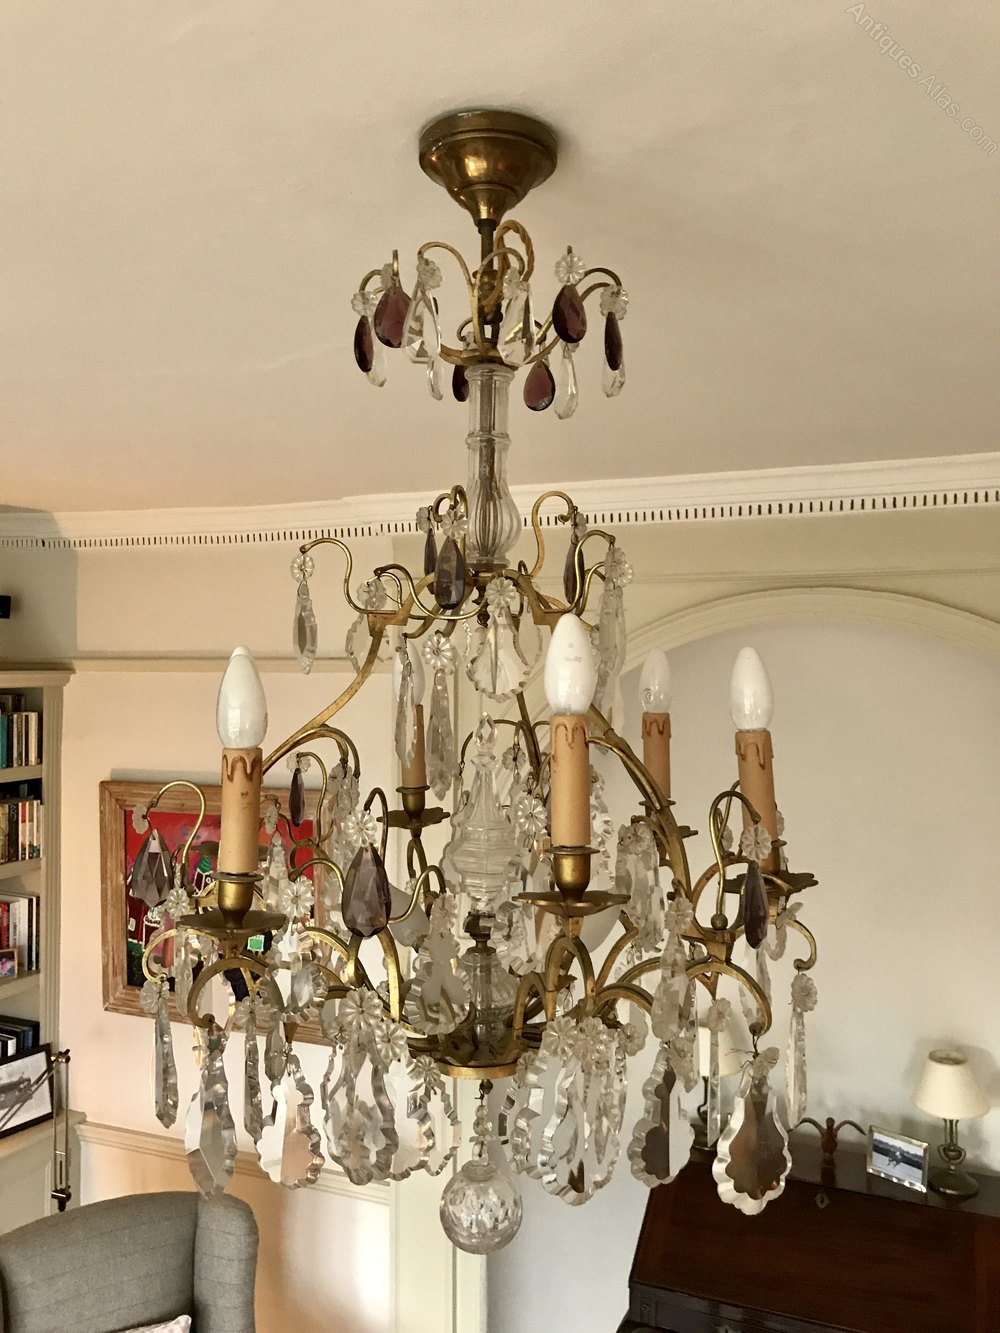 Antique French Chandelier - French Chandeliers - Flemish Chandeliers